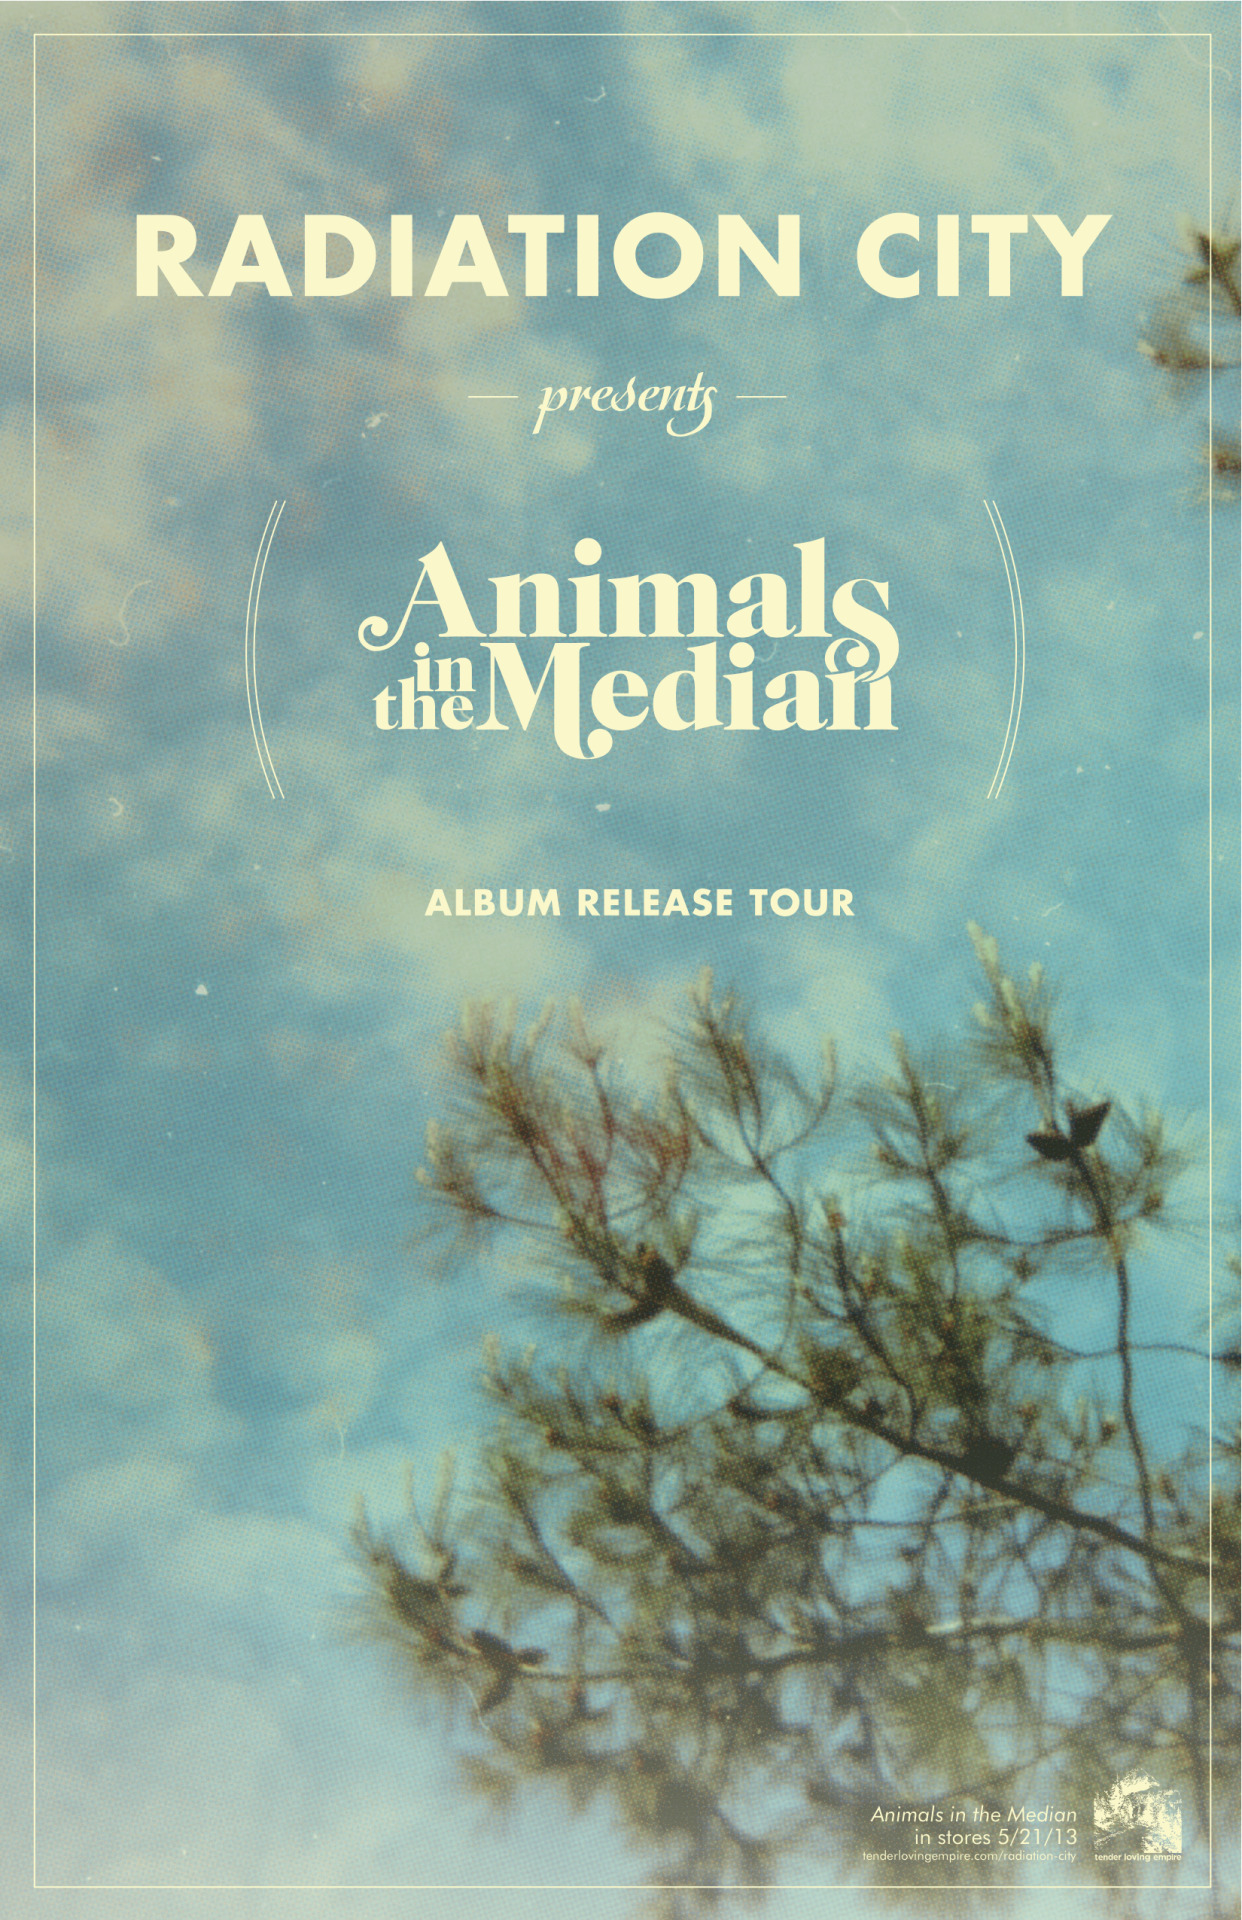 radiationcity:  Animals in the Median is out today on Tender Loving Empire.  Give a listen here.  Own it on vinyl, CD, or digital formats.